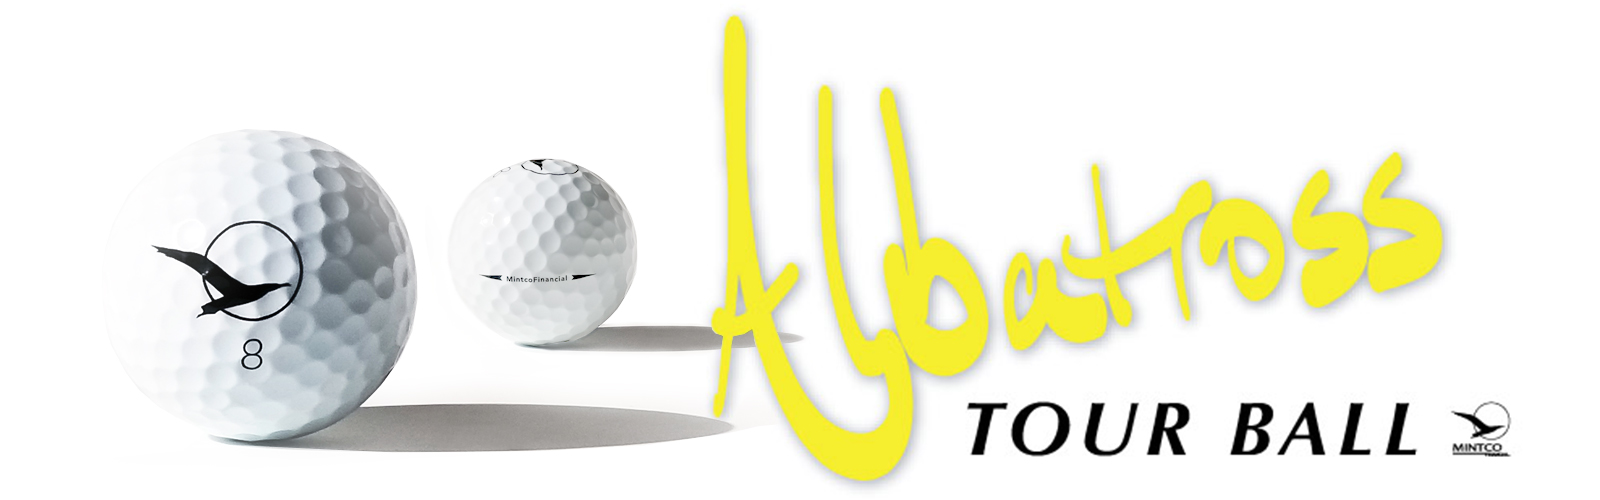 Albatross Tour Ball